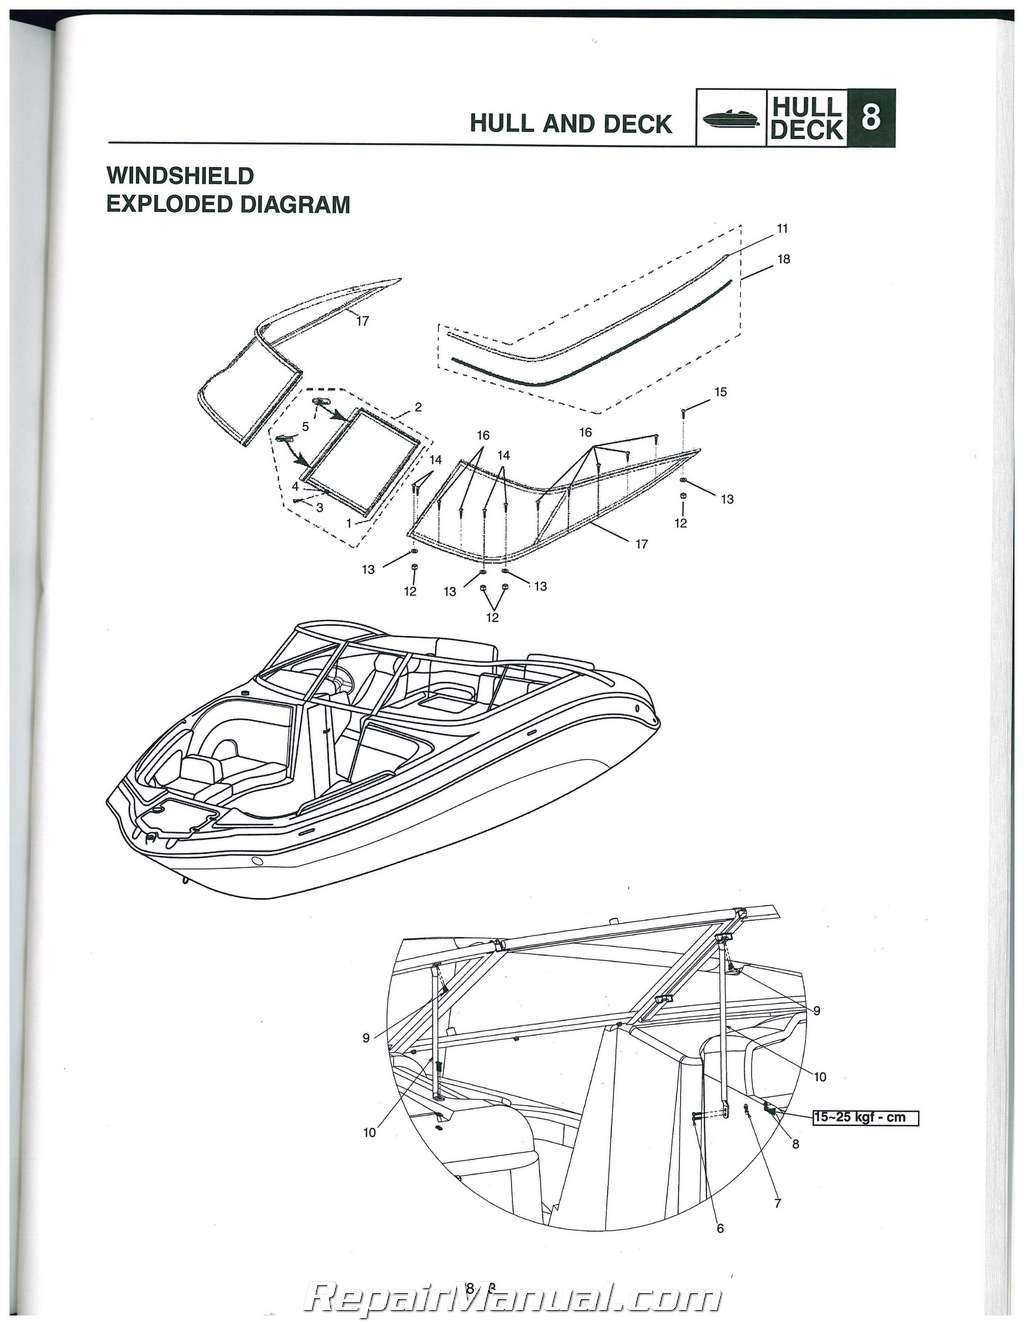 Yamaha Sxt 242 Limited S Ar240 Sx240 High Output Sport Boat Service Manual